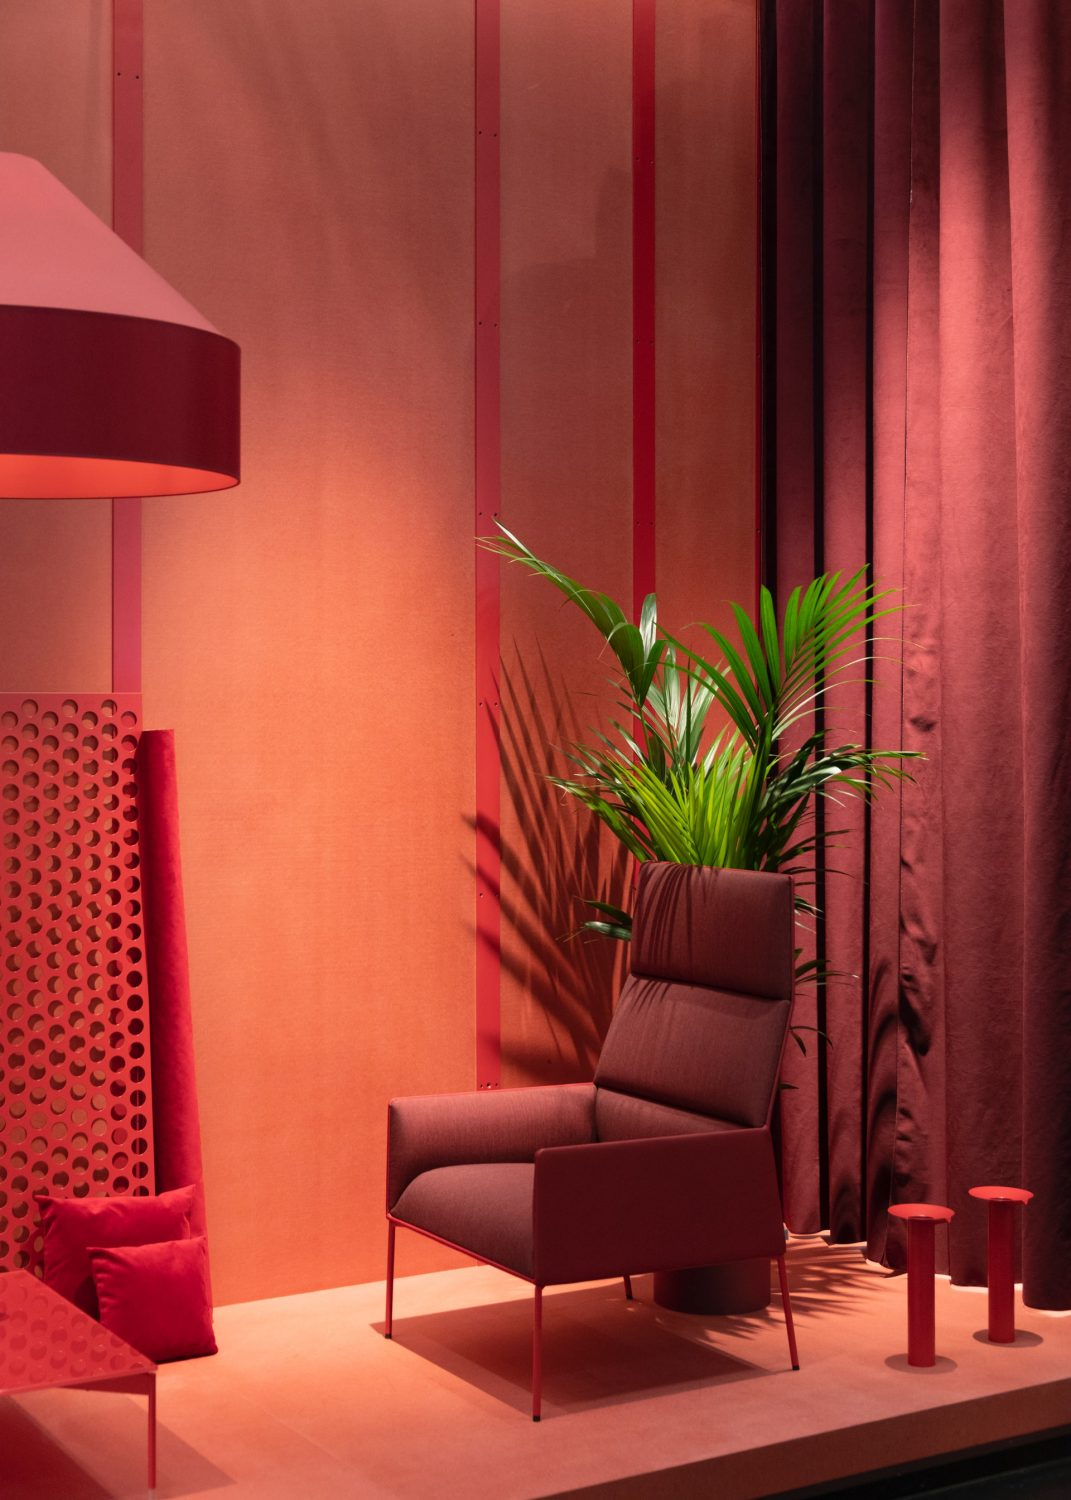 The Effects of Colour in Interior Design